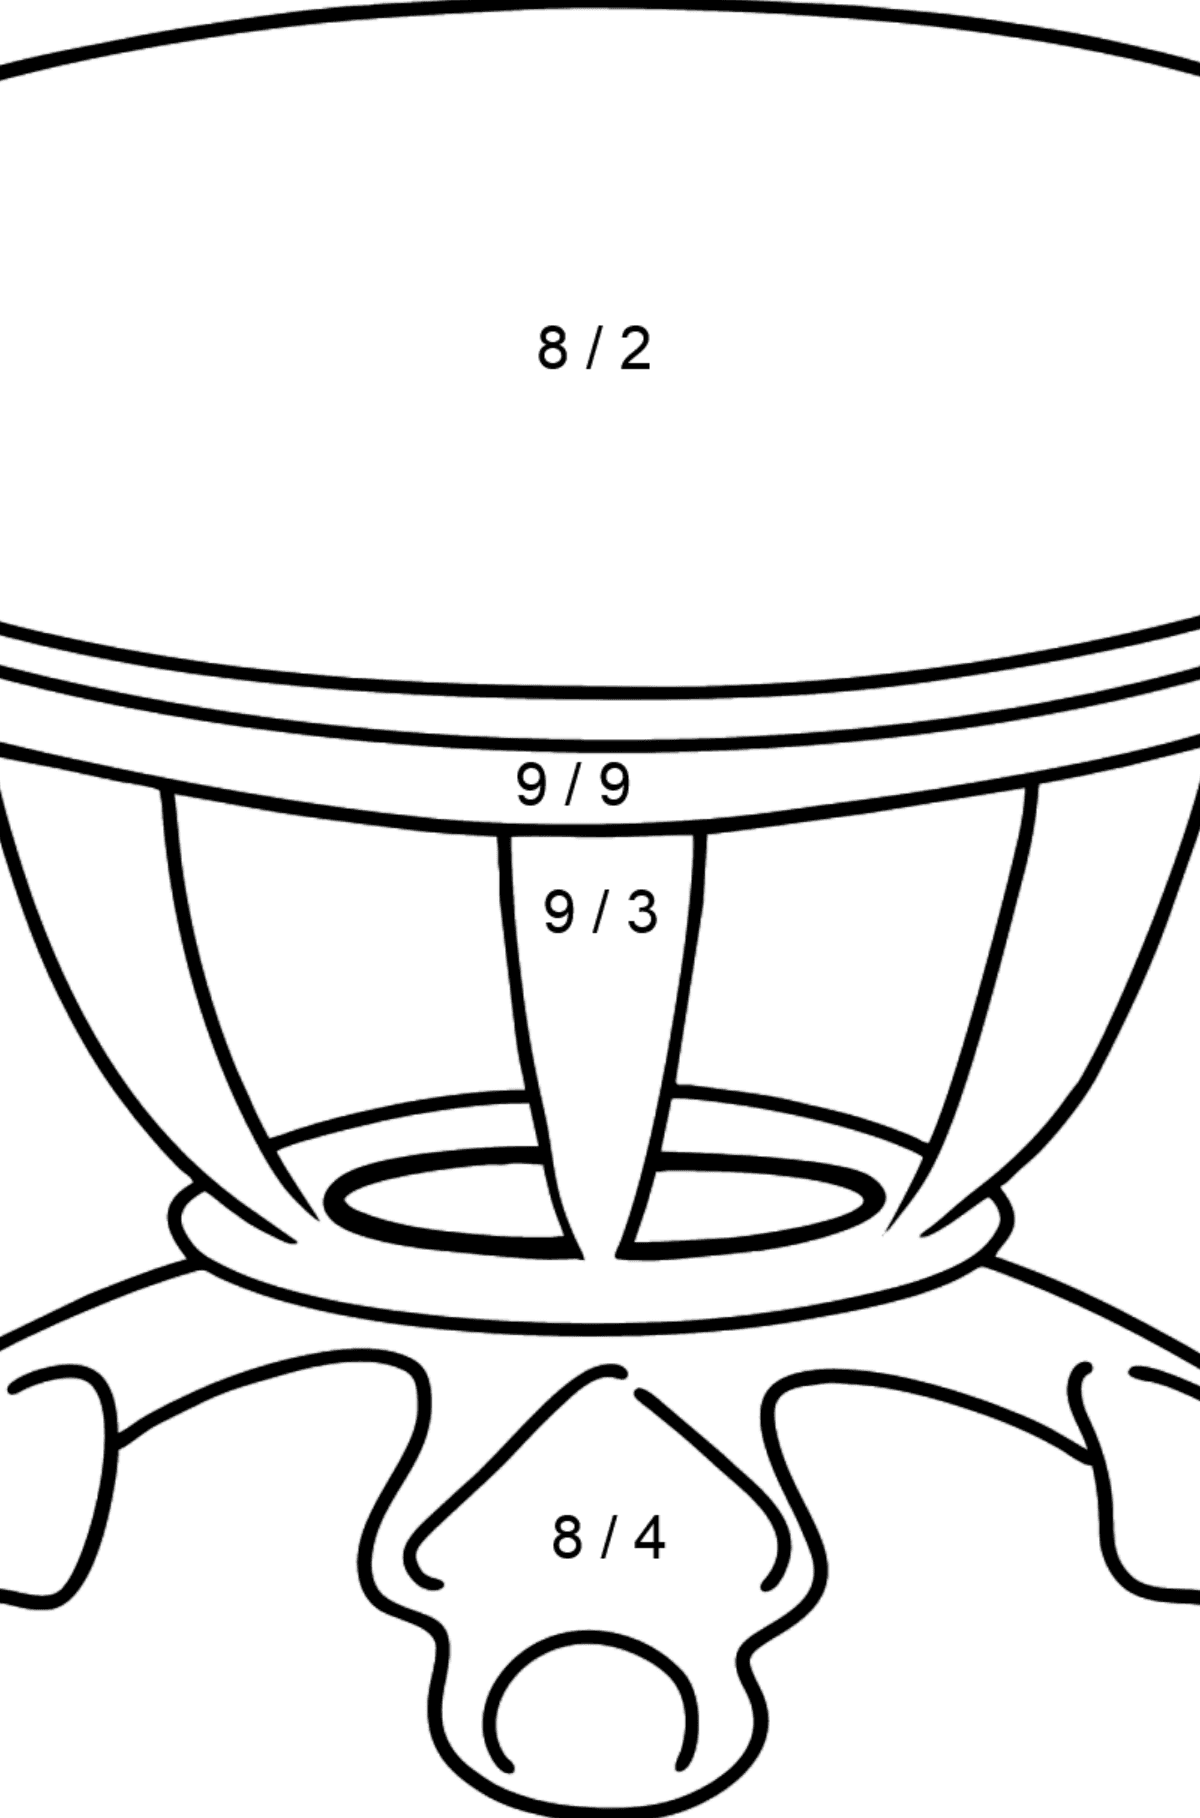 Dining Table coloring page - Math Coloring - Division for Kids